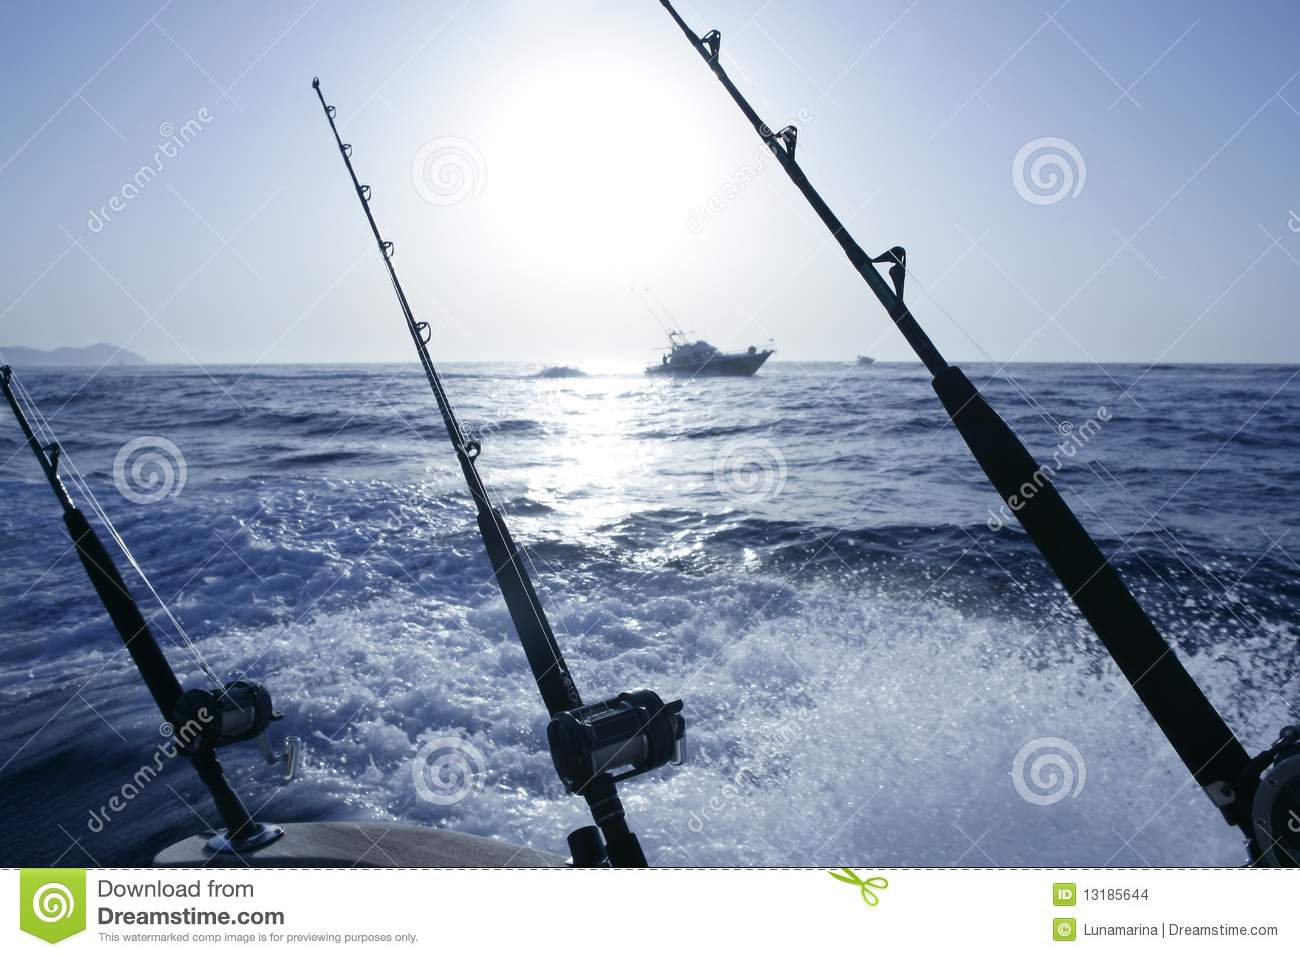 Boat Trolling Fishing On Mediterranean Stock Images - Image: 13185644